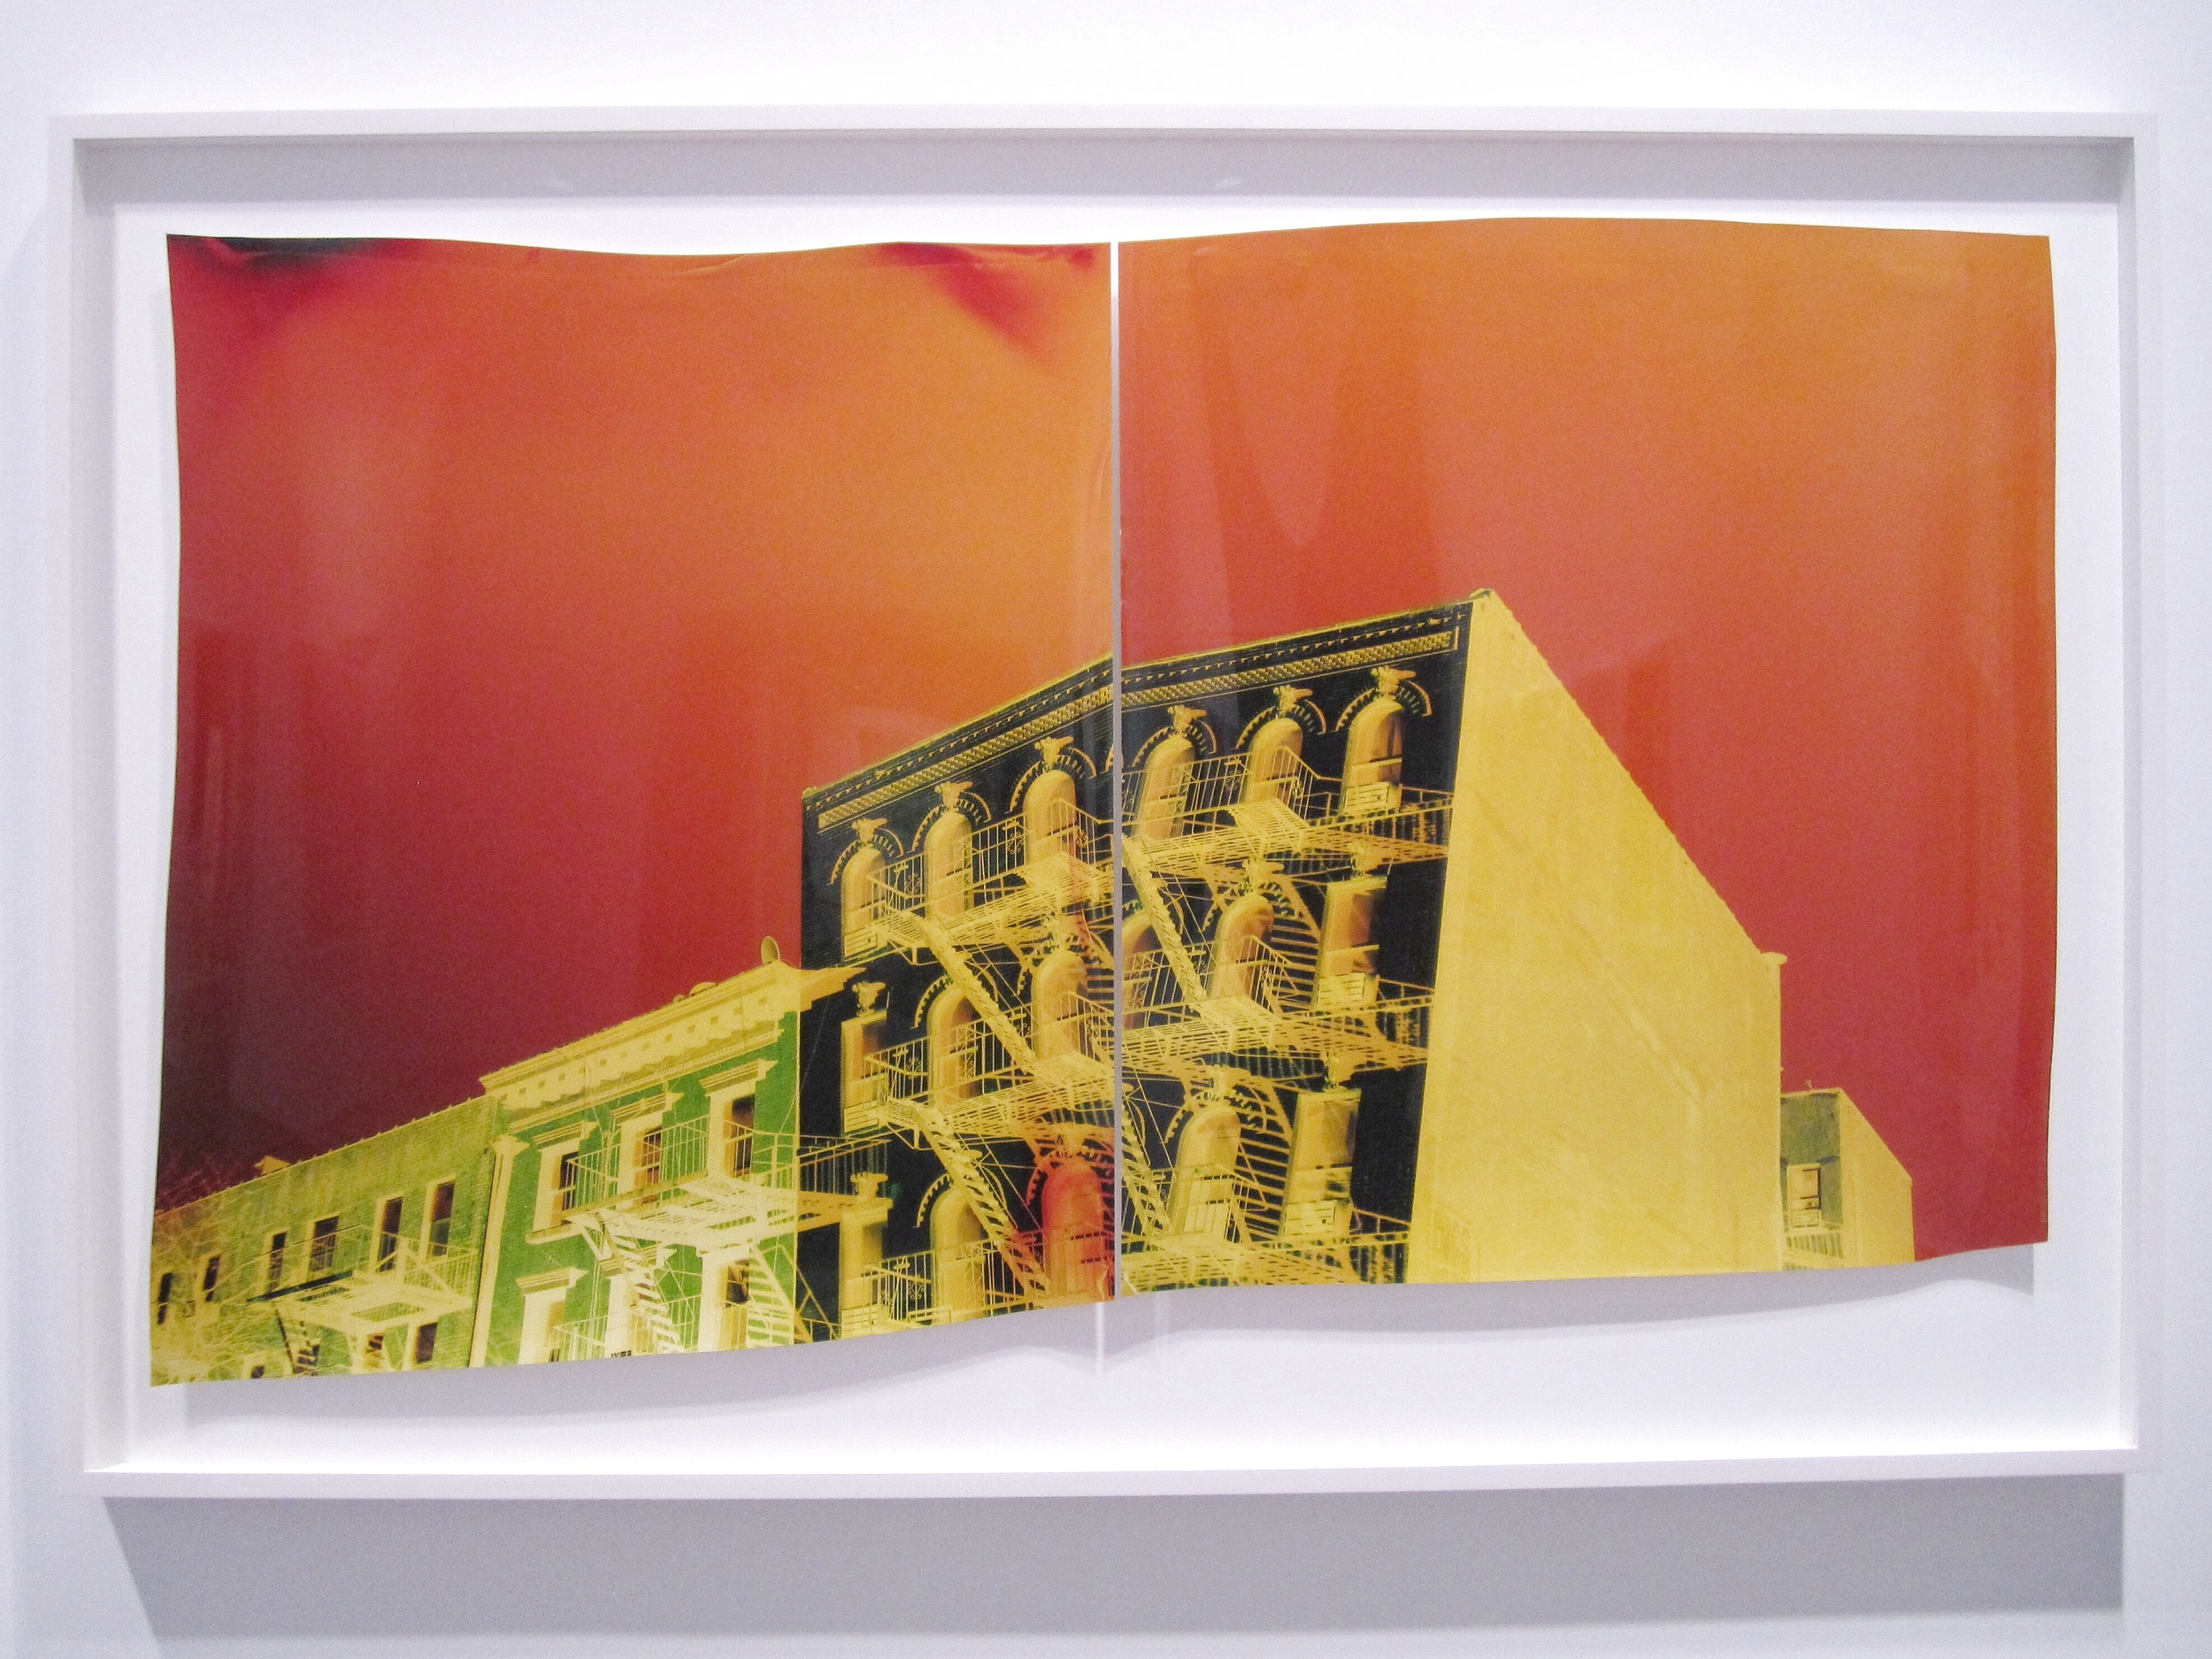 John Chiara, E14th Street at Avenue A ,  Two Negative Chromogenic Photographs, 2015